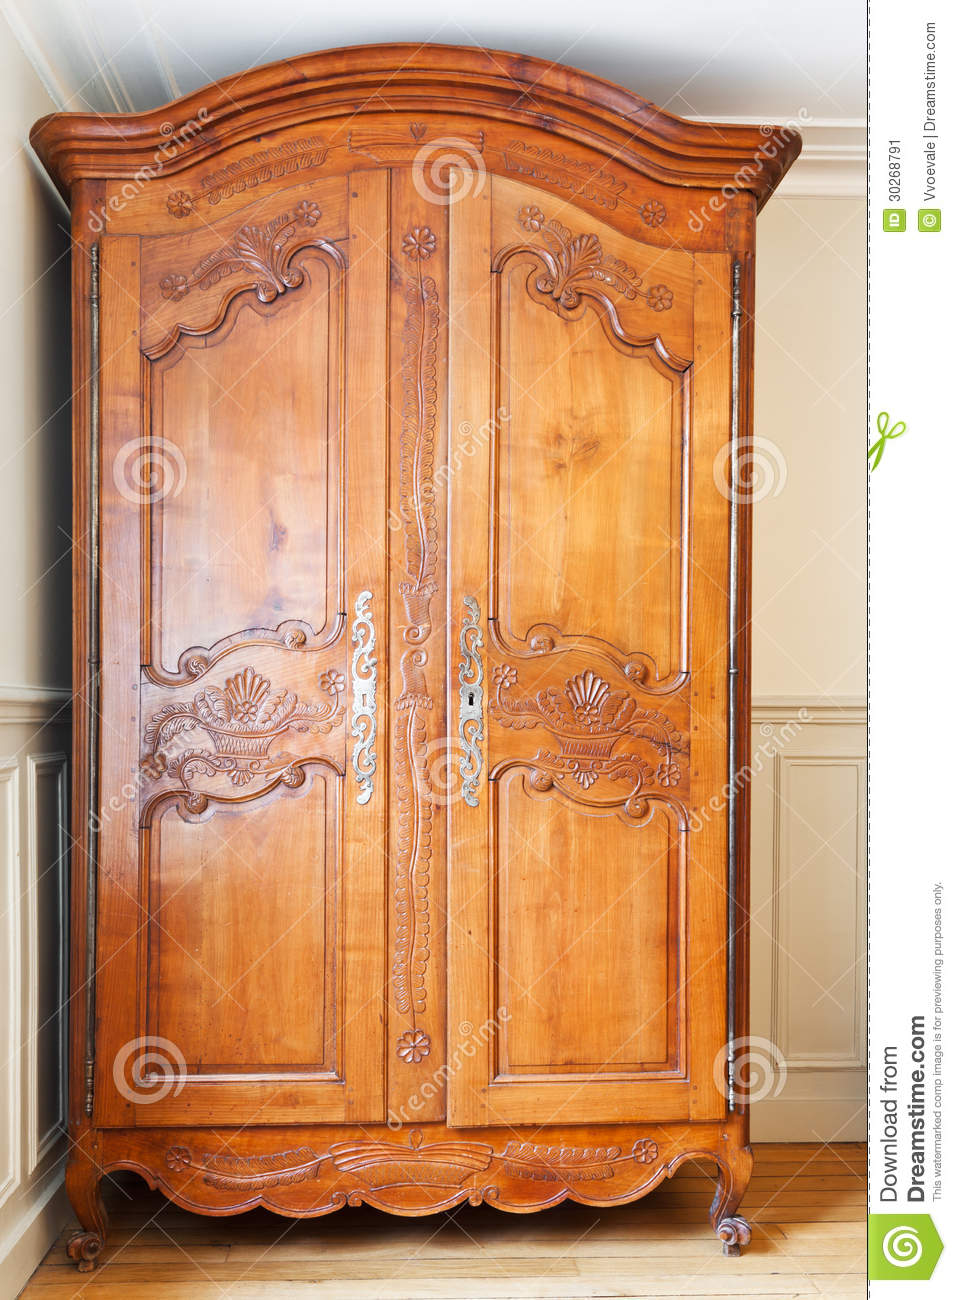 Old retro wardrobe stock image image 30268791 - Relooker armoire ancienne ...